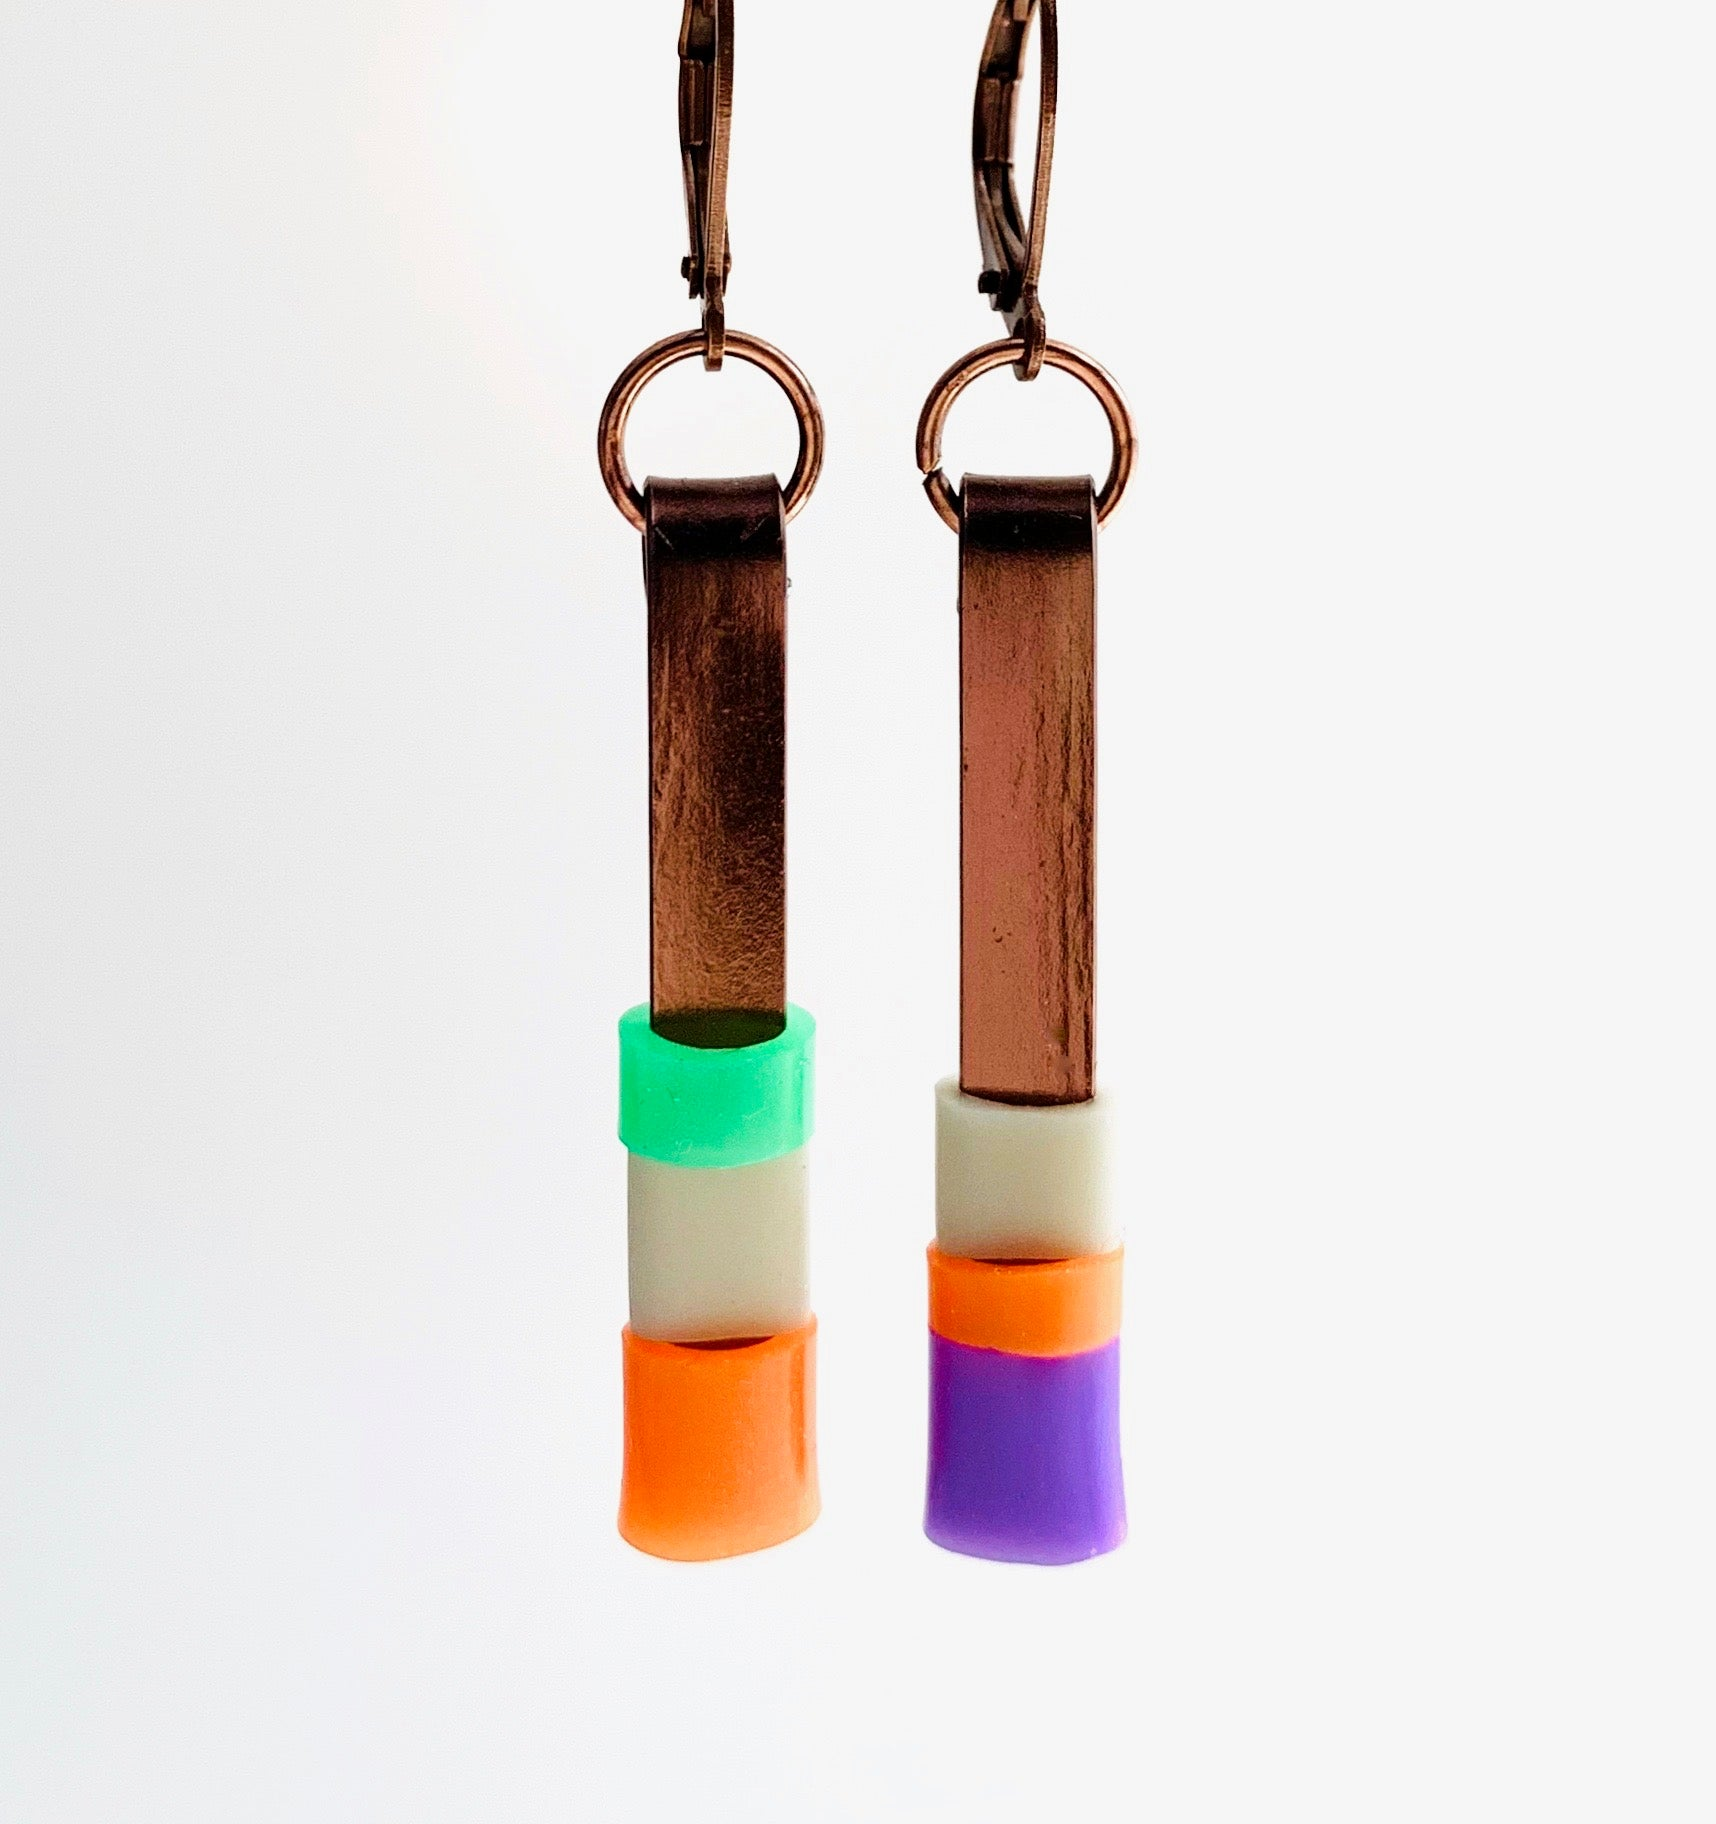 Matchstick earrings in bronze coloured aluminum wire with orange, purple, beige and green coloured silicone tubing. These hang 4cm in length.